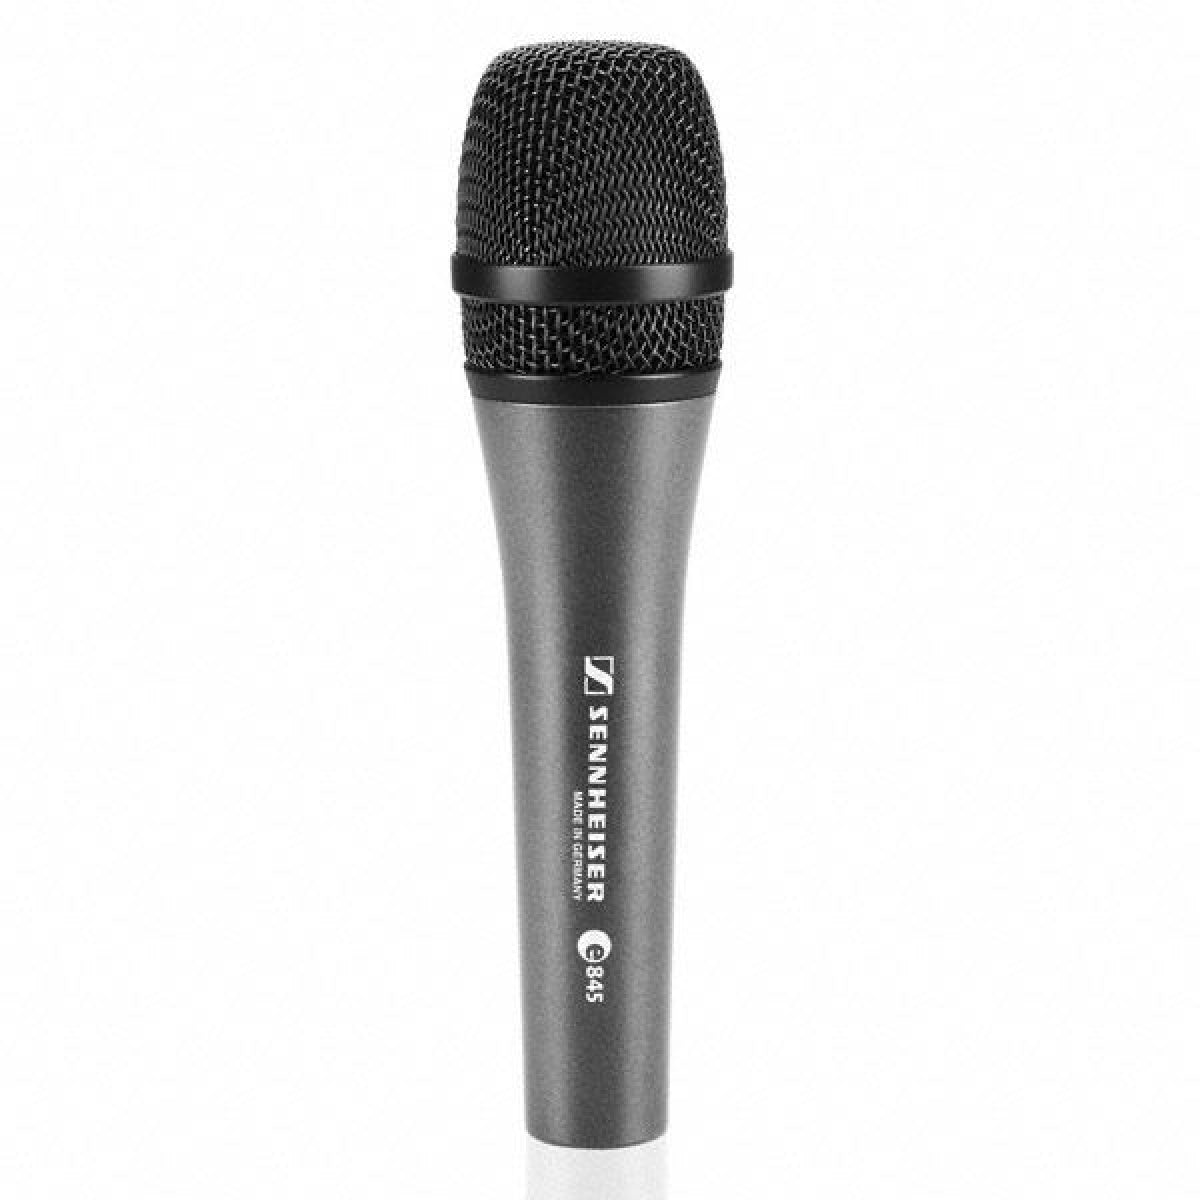 Sennheiser E845 Evolution 800 Series Supercardioid Microphone - Audio Leaders